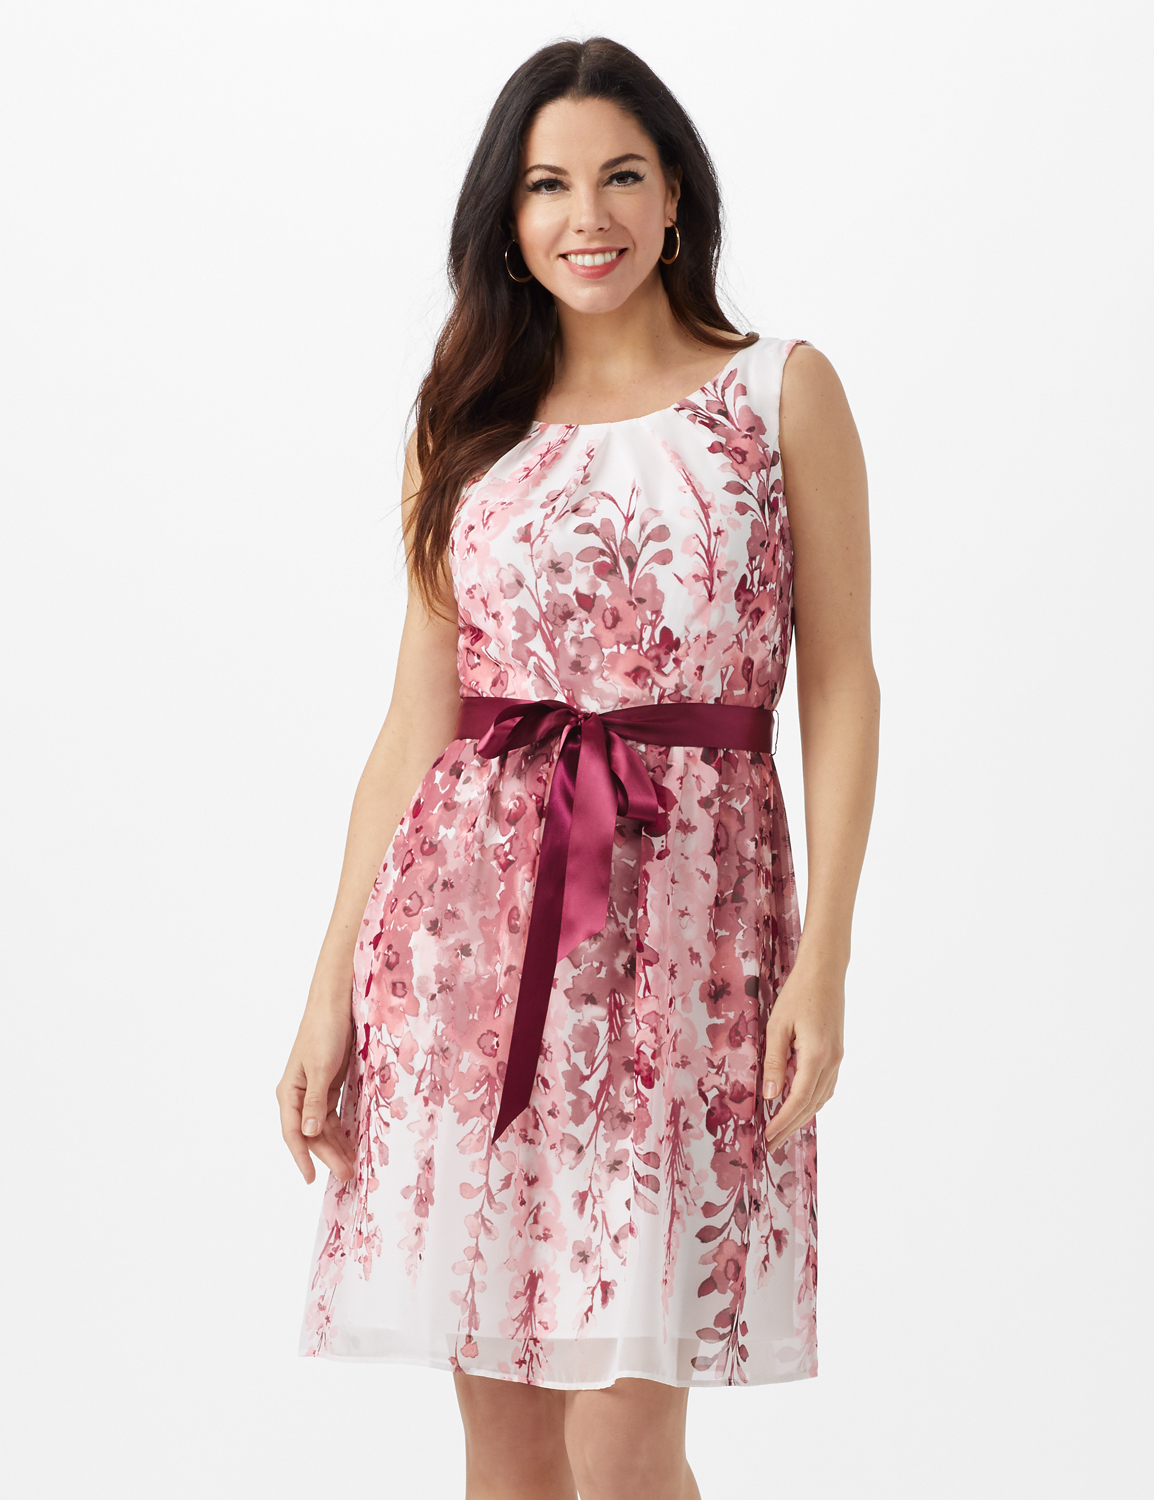 Double Vine Floral Boarder Dress with Satin Ribbon Belt -Dusty Rose - Front